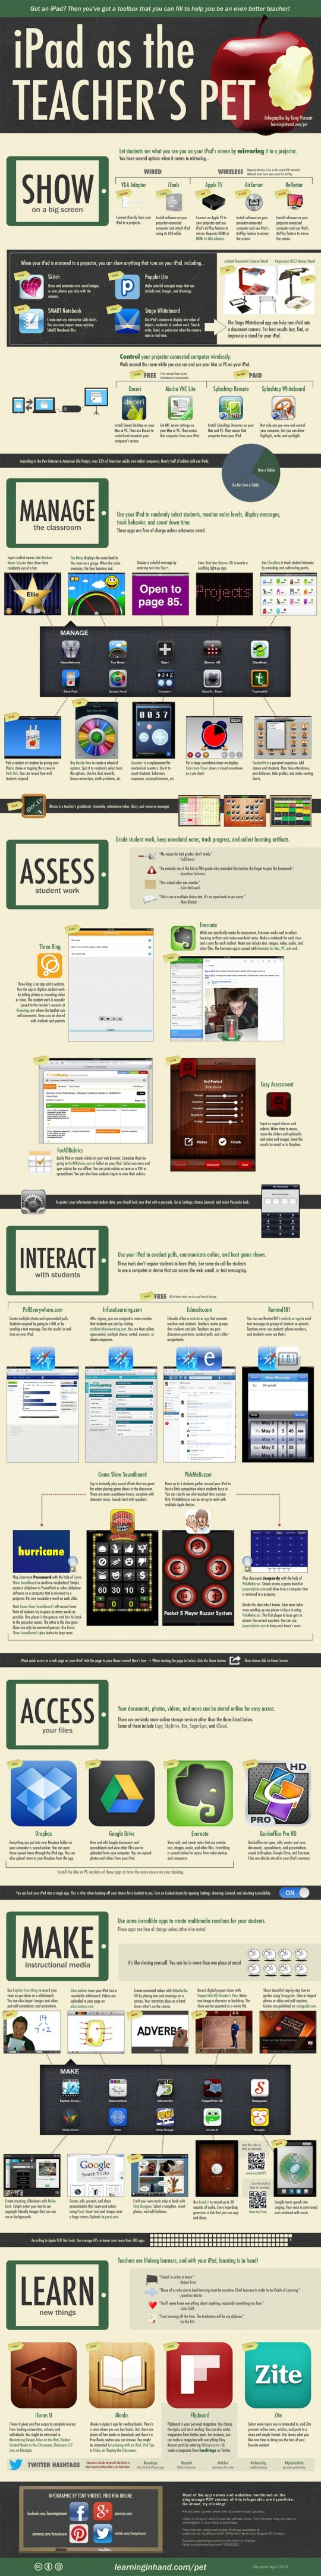 7 ways teachers can use iPad infographic